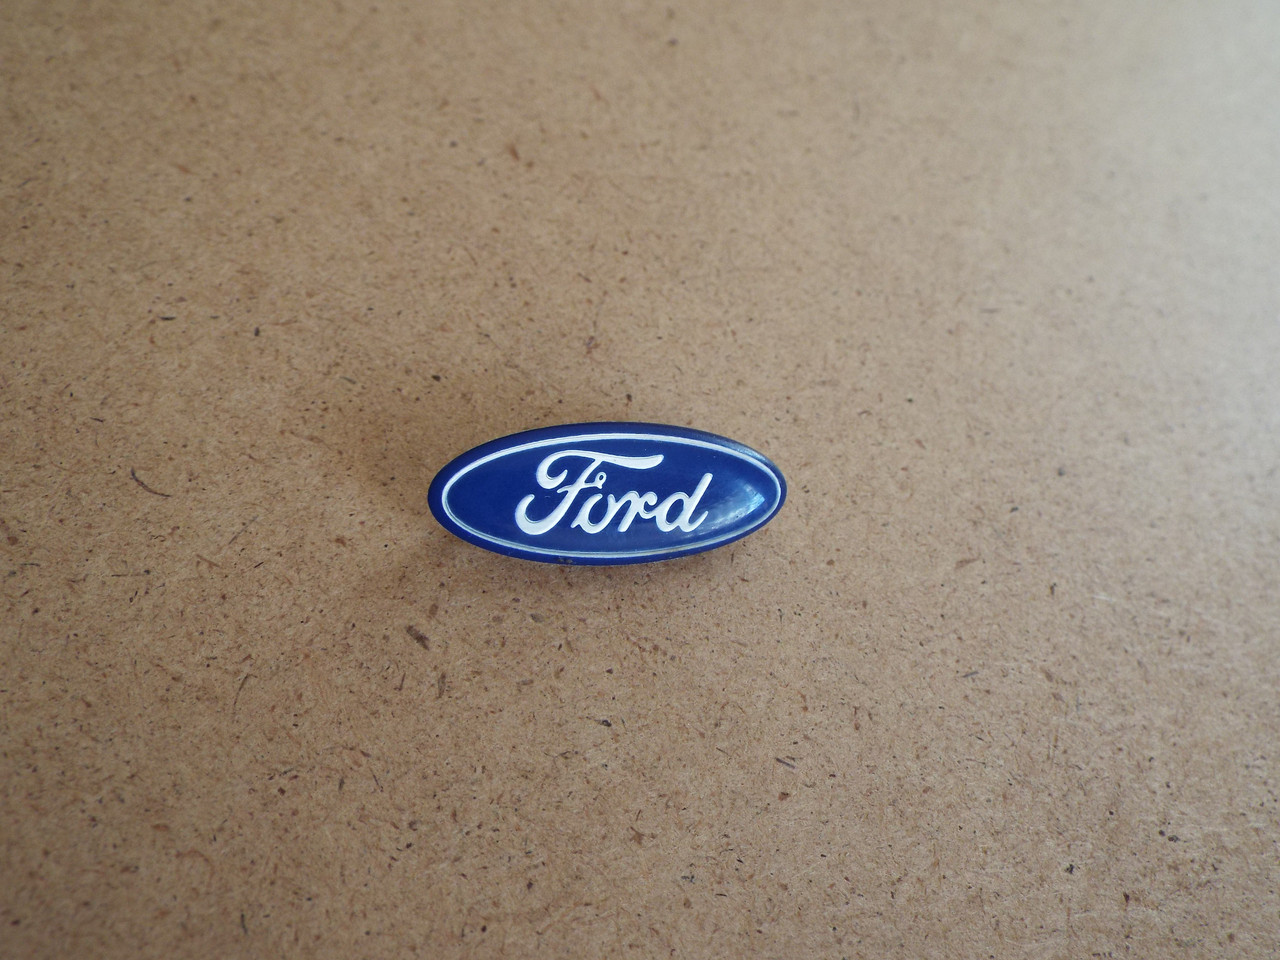 1989 Ford Mustang GT Horn Pad-Horn Button Emblem-Badge 1988 Ford Mustang GT Horn Pad-Horn Button Emblem-Badge 1987 Ford Mustang GT Horn Pad-Horn Button Emblem-Badge 1986 Ford Mustang GT Horn Pad-Horn Button Emblem-Badge 1985 Ford Mustang GT Horn Pad-Horn Button Emblem-Badge 1984 Ford Mustang GT Horn Pad-Horn Button Emblem-Badge 1983 Ford Mustang GT Horn Pad-Horn Button Emblem-Badge